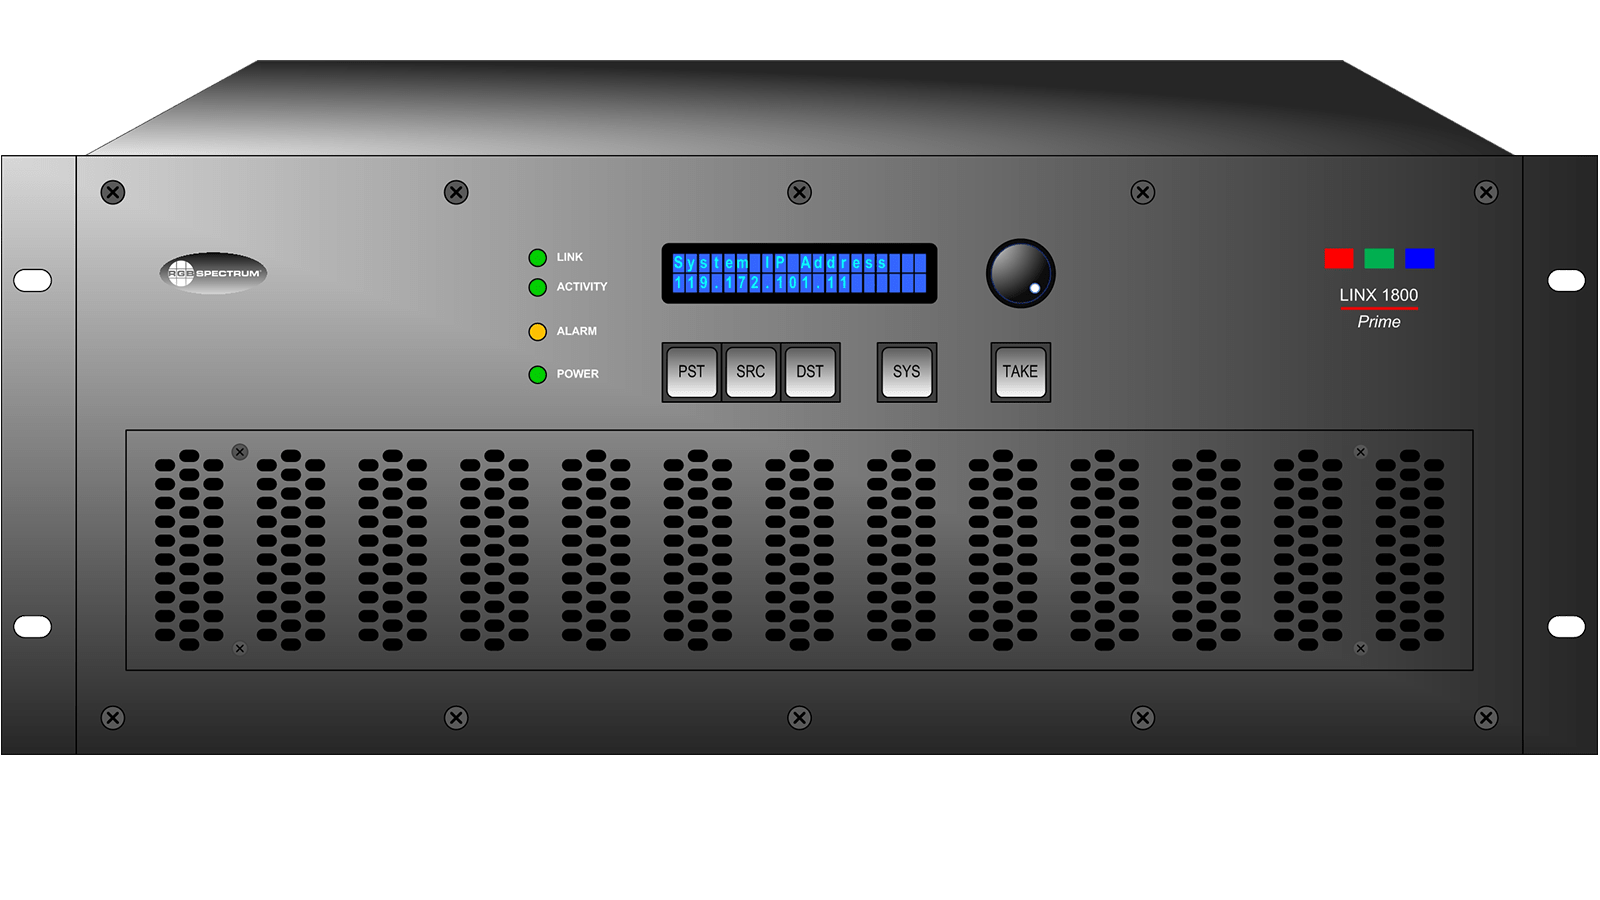 Linx 1800: Front Panel